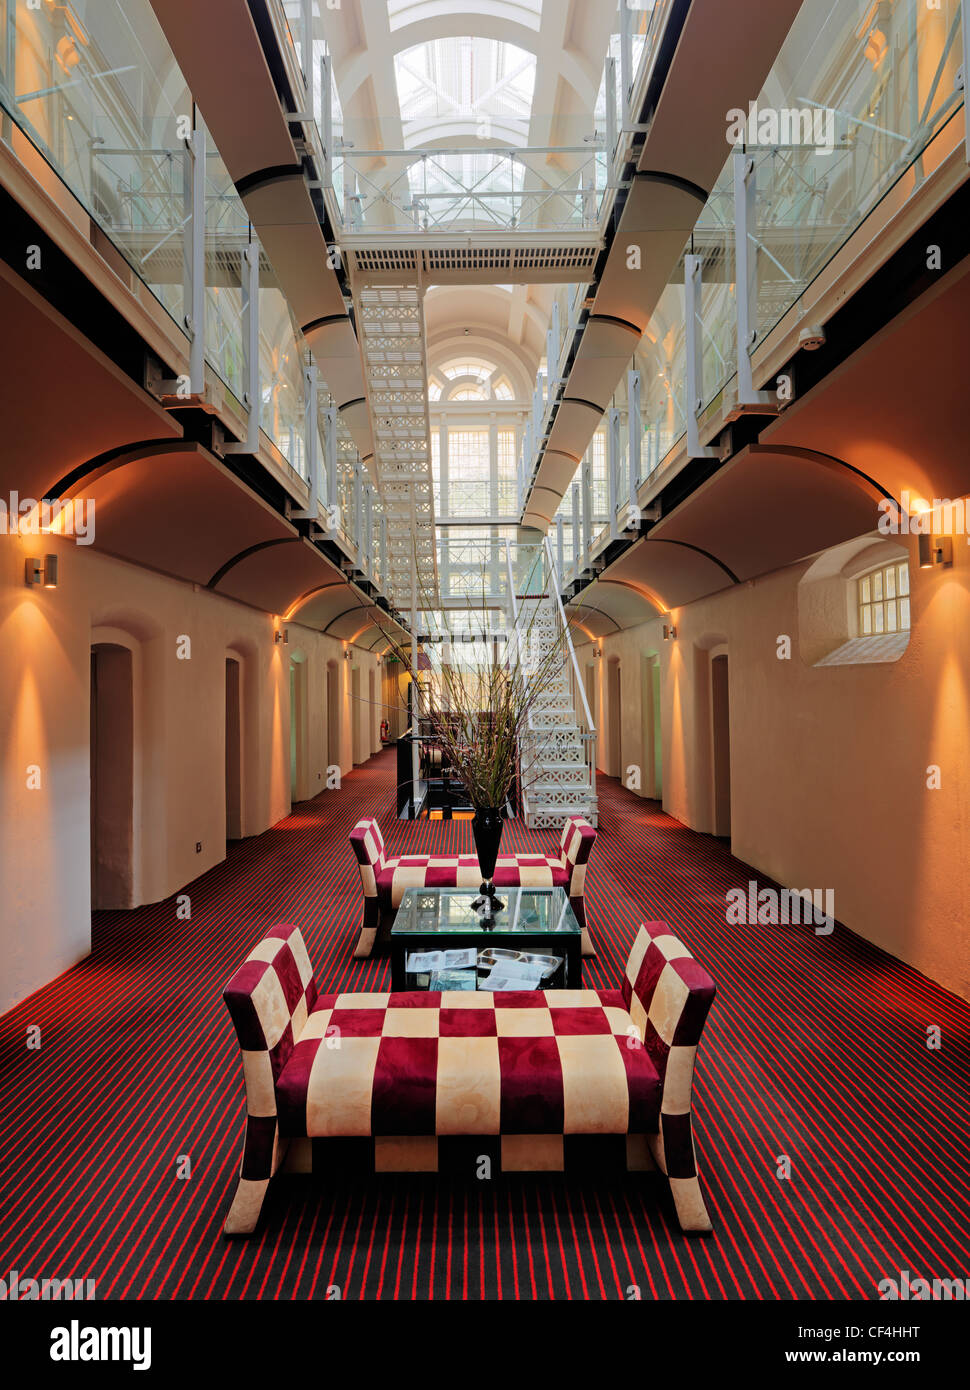 Inside the oxford mal a former prison converted into a for Luxury hotel oxford